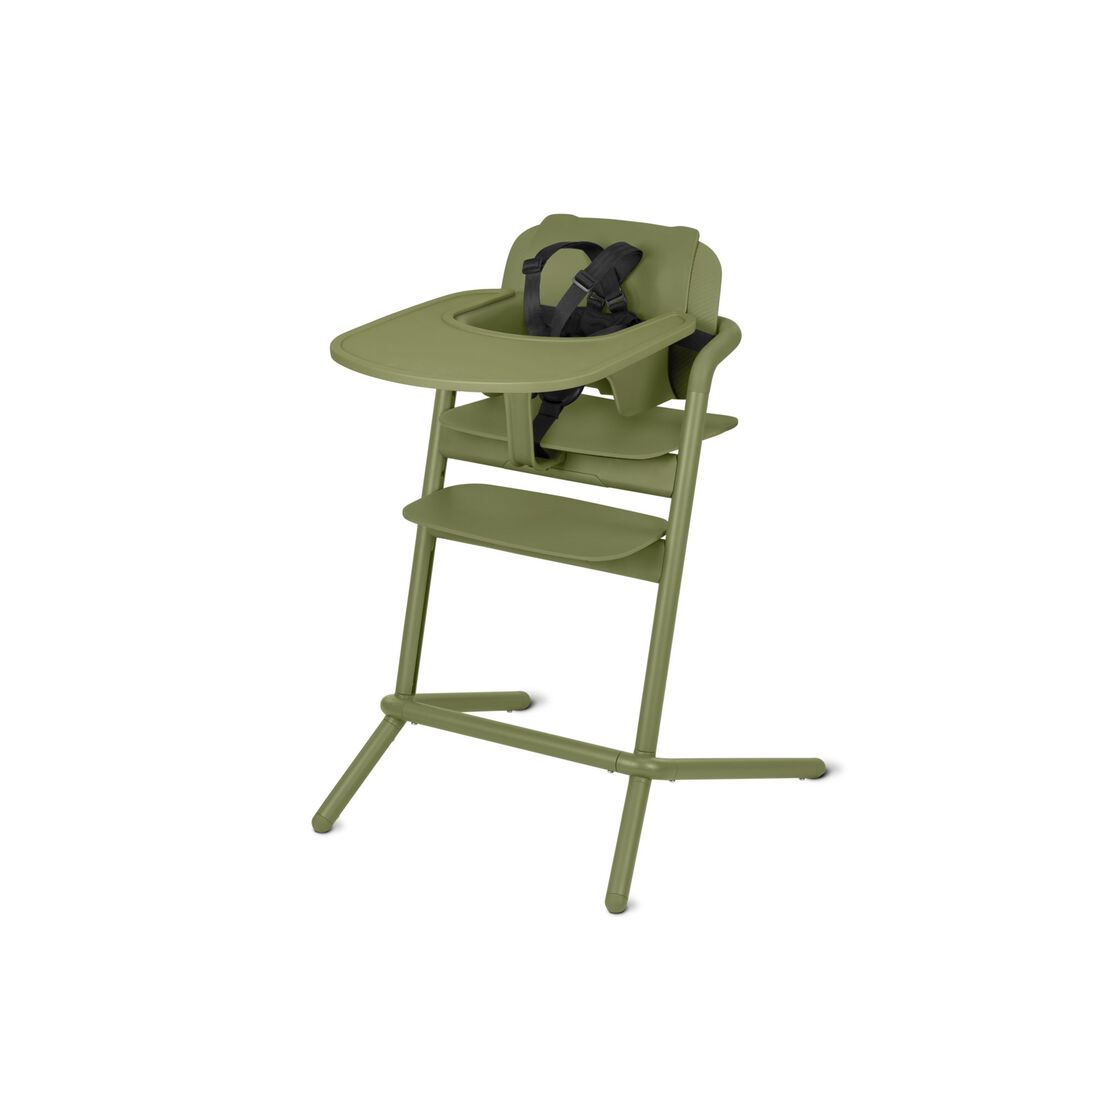 CYBEX Lemo Tray - Outback Green in Outback Green large Bild 2